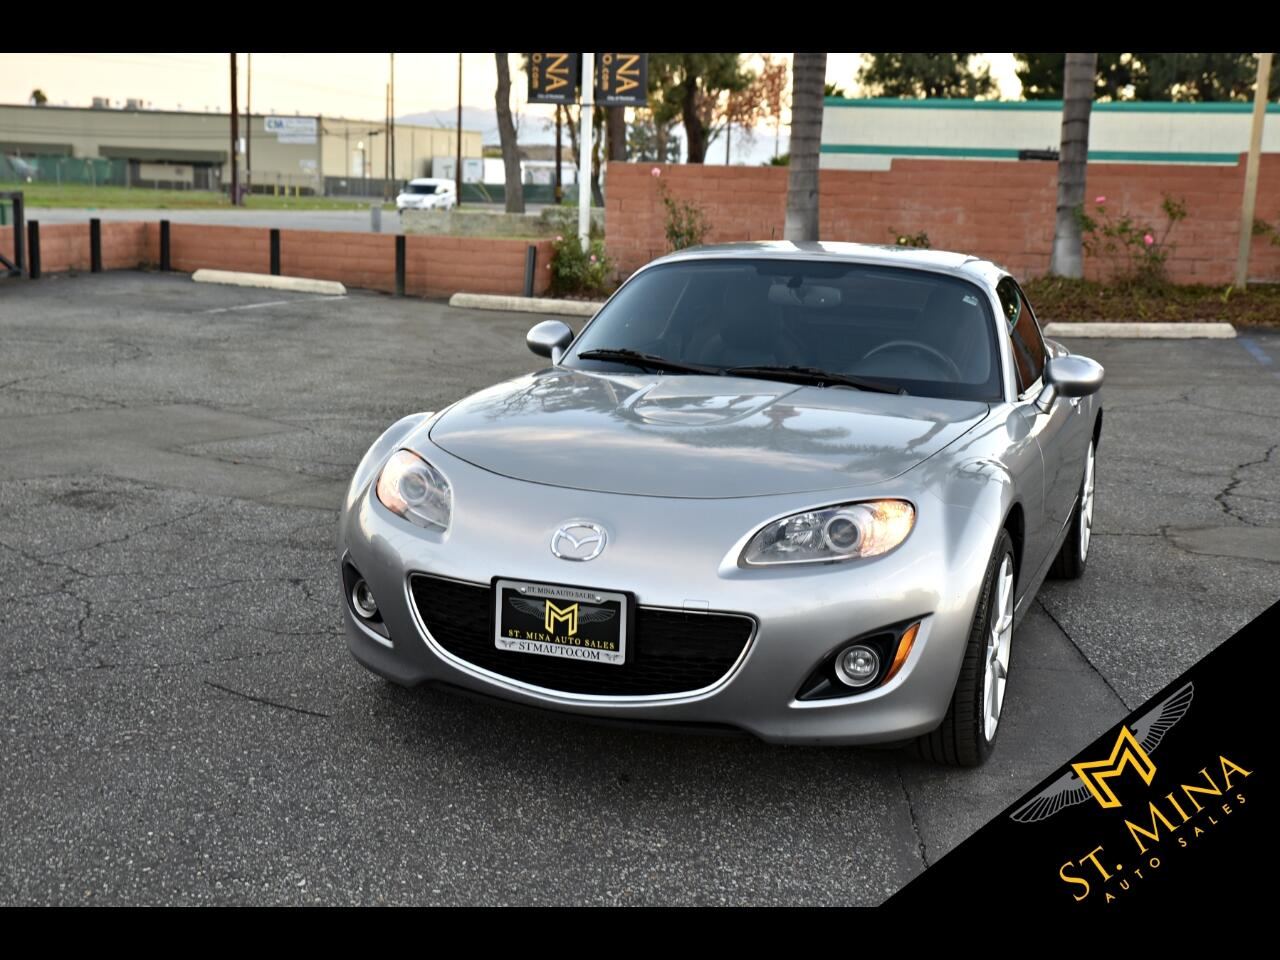 2012 Mazda MX-5 Miata Grand Touring Hard Top